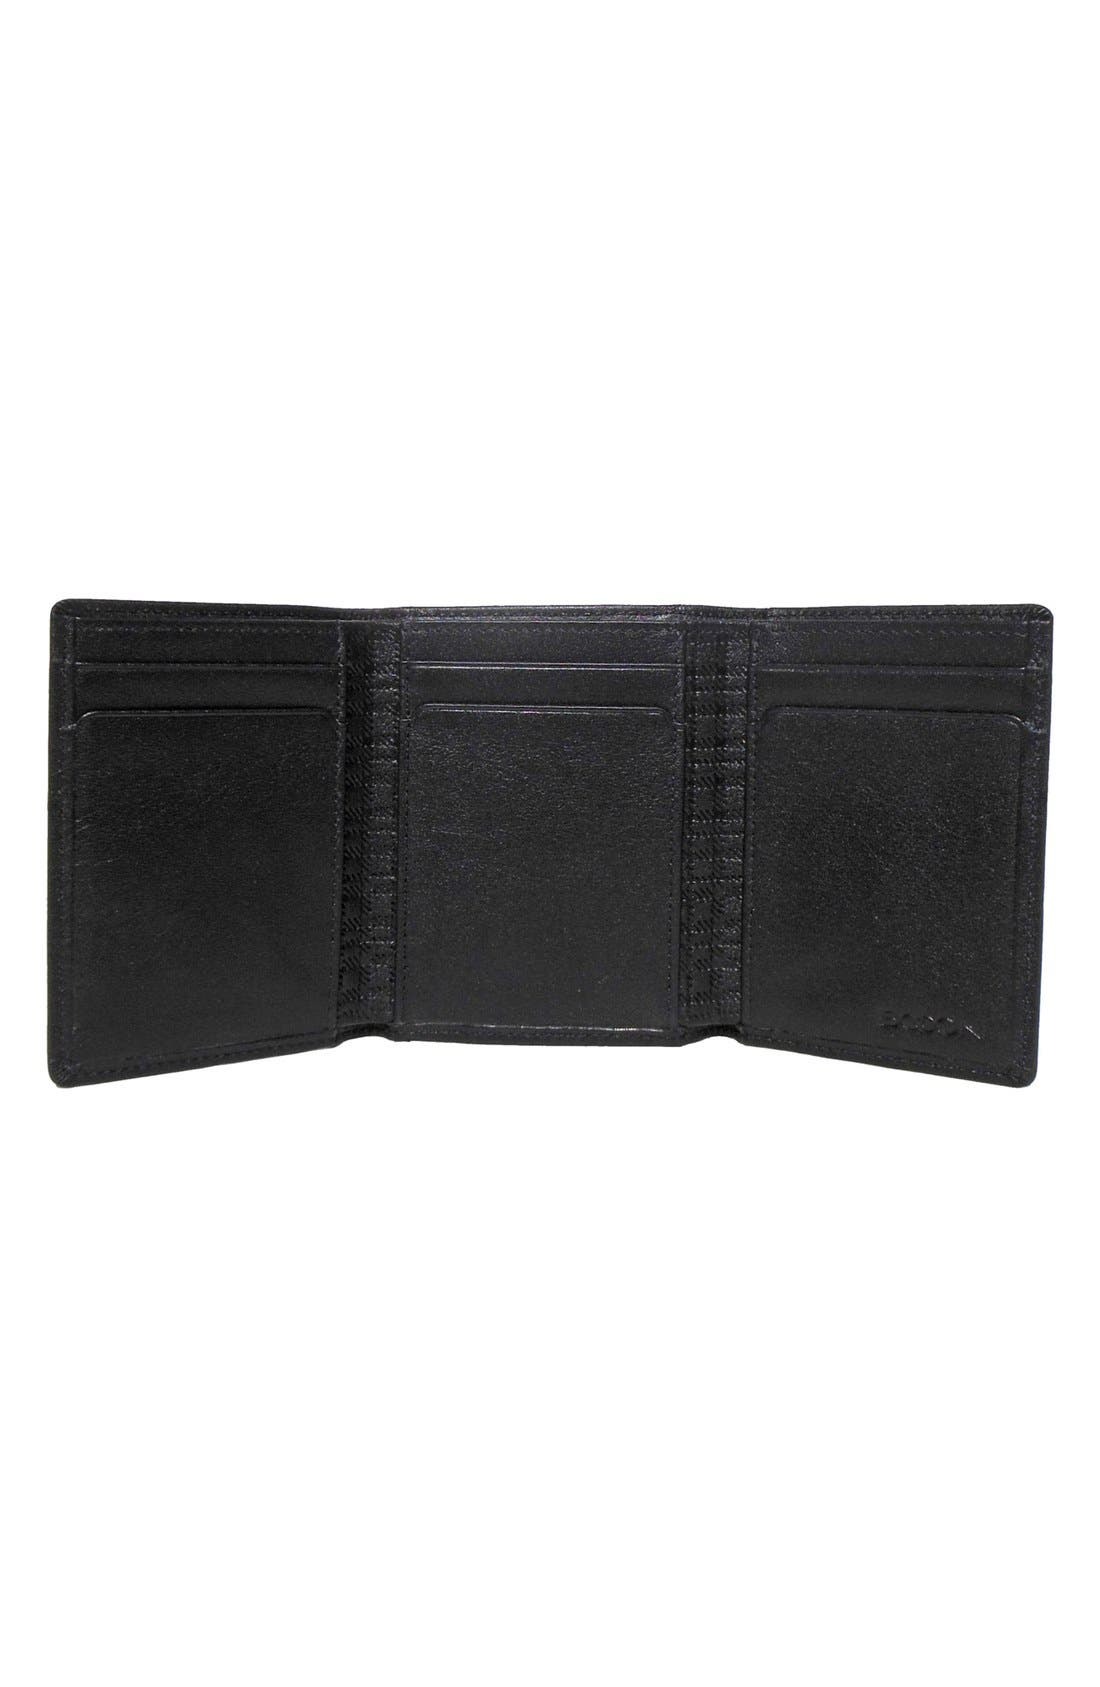 Alternate Image 2  - Boconi 'Grant' RFID Blocker Leather Trifold Wallet